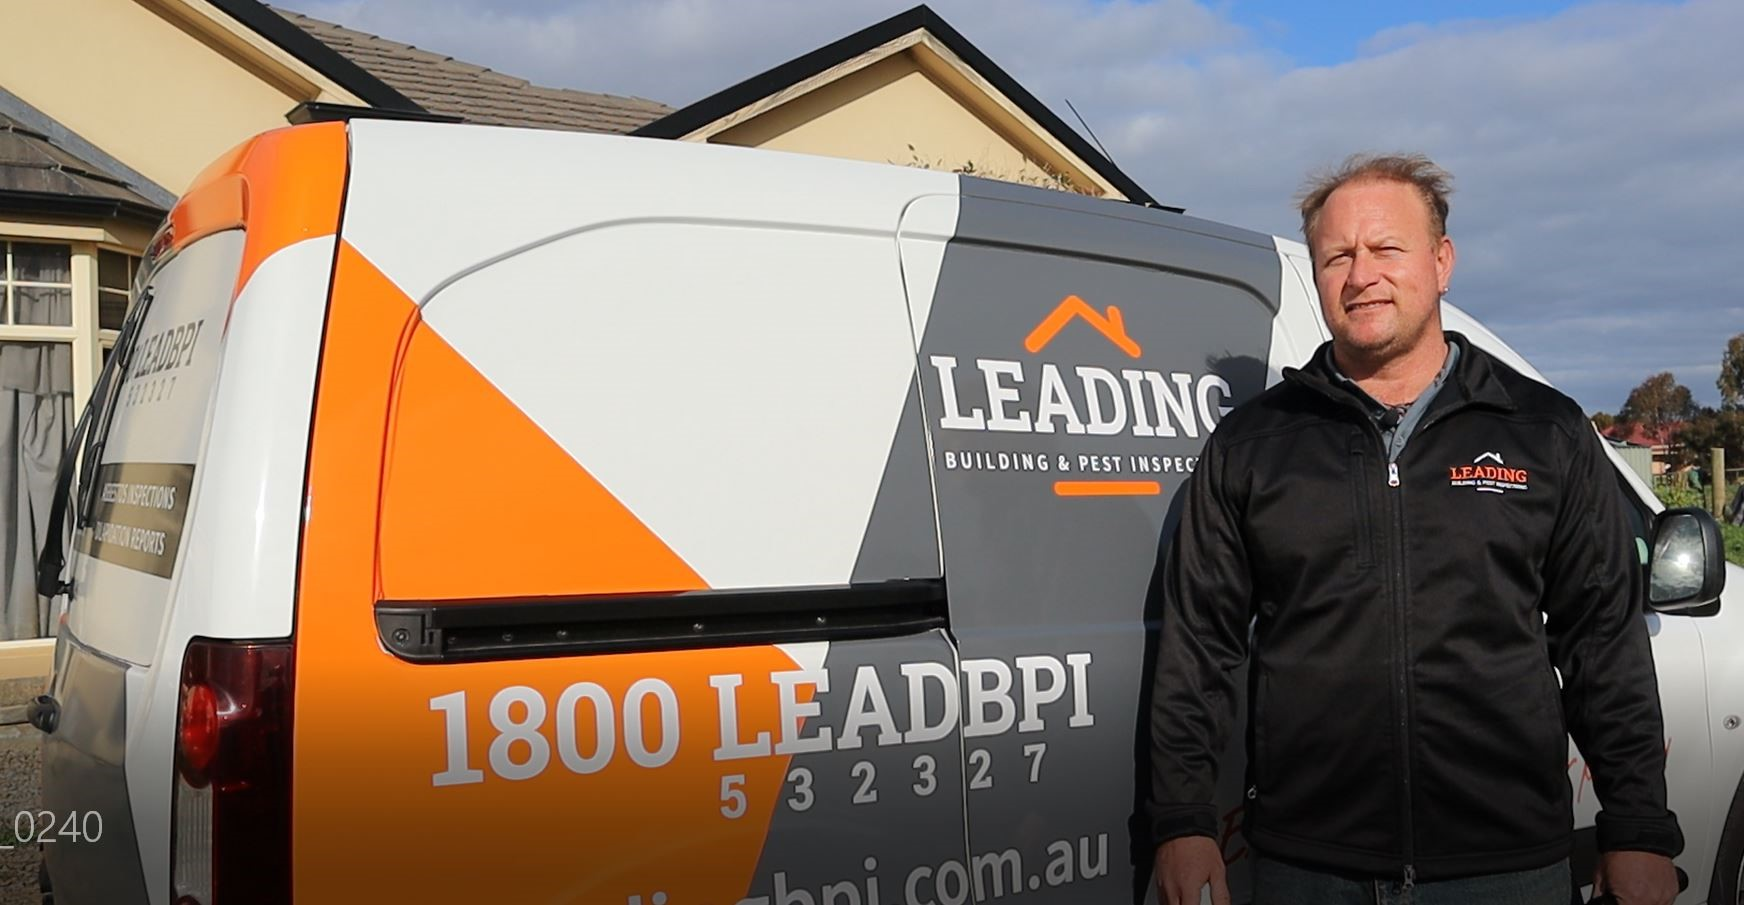 leading build and pest inspections gawler